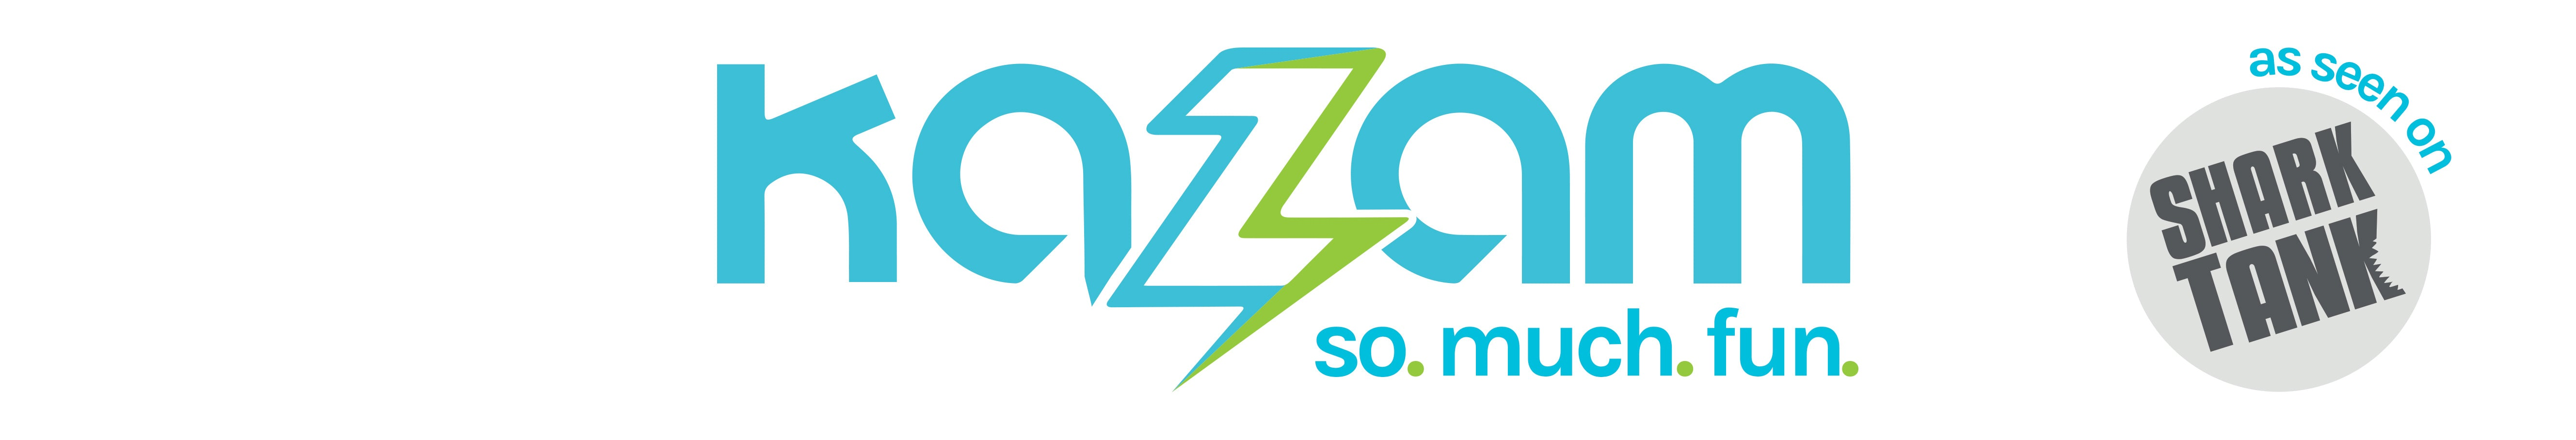 Kazam - so. much. fun. logo - As Seen on SharkTank!